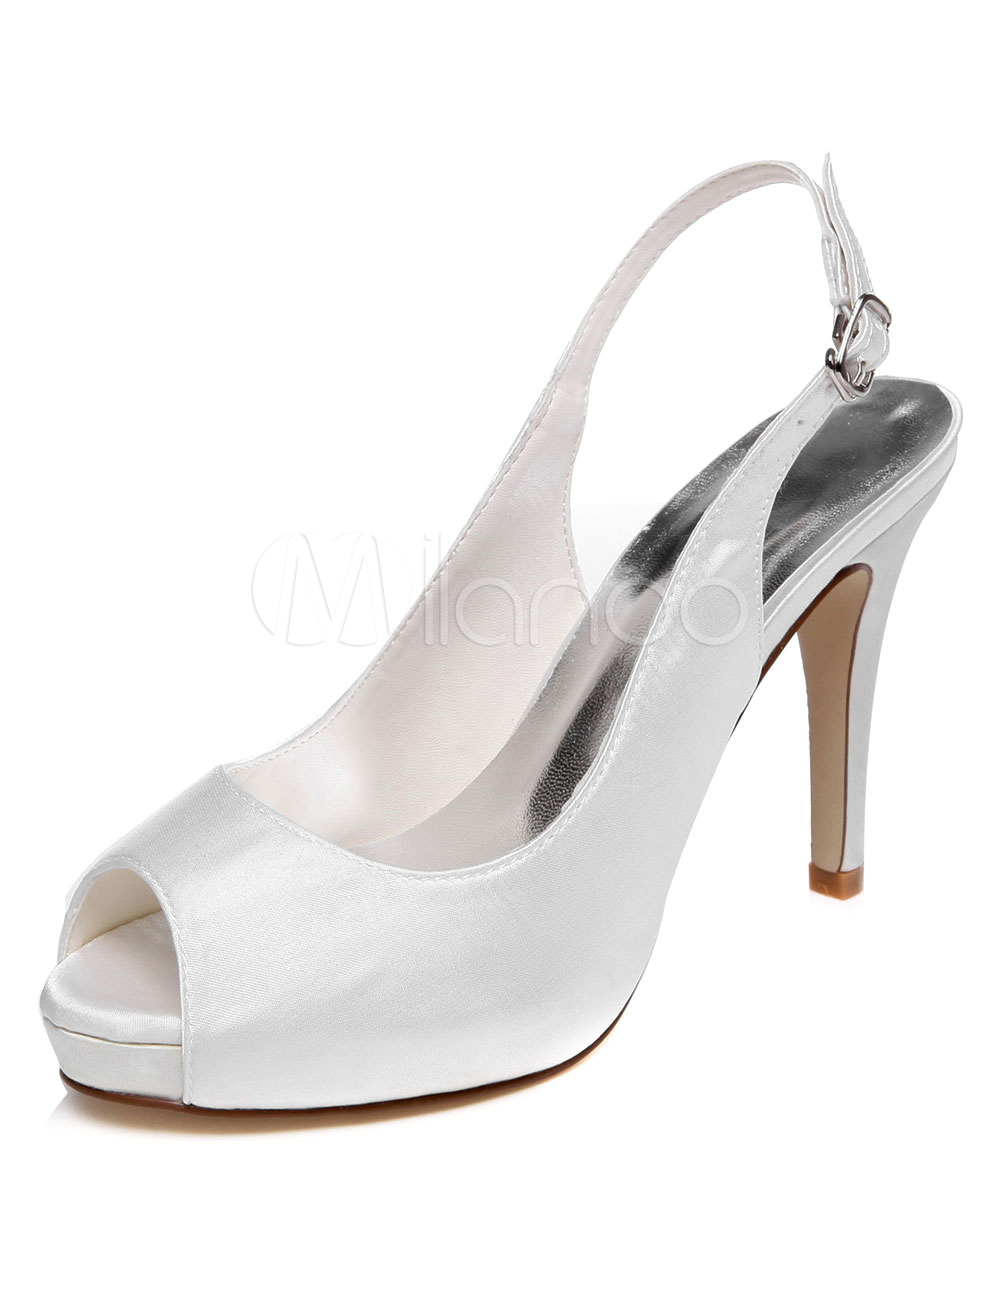 White Platform Satin Peep Toe Evening&Bridal Sandals